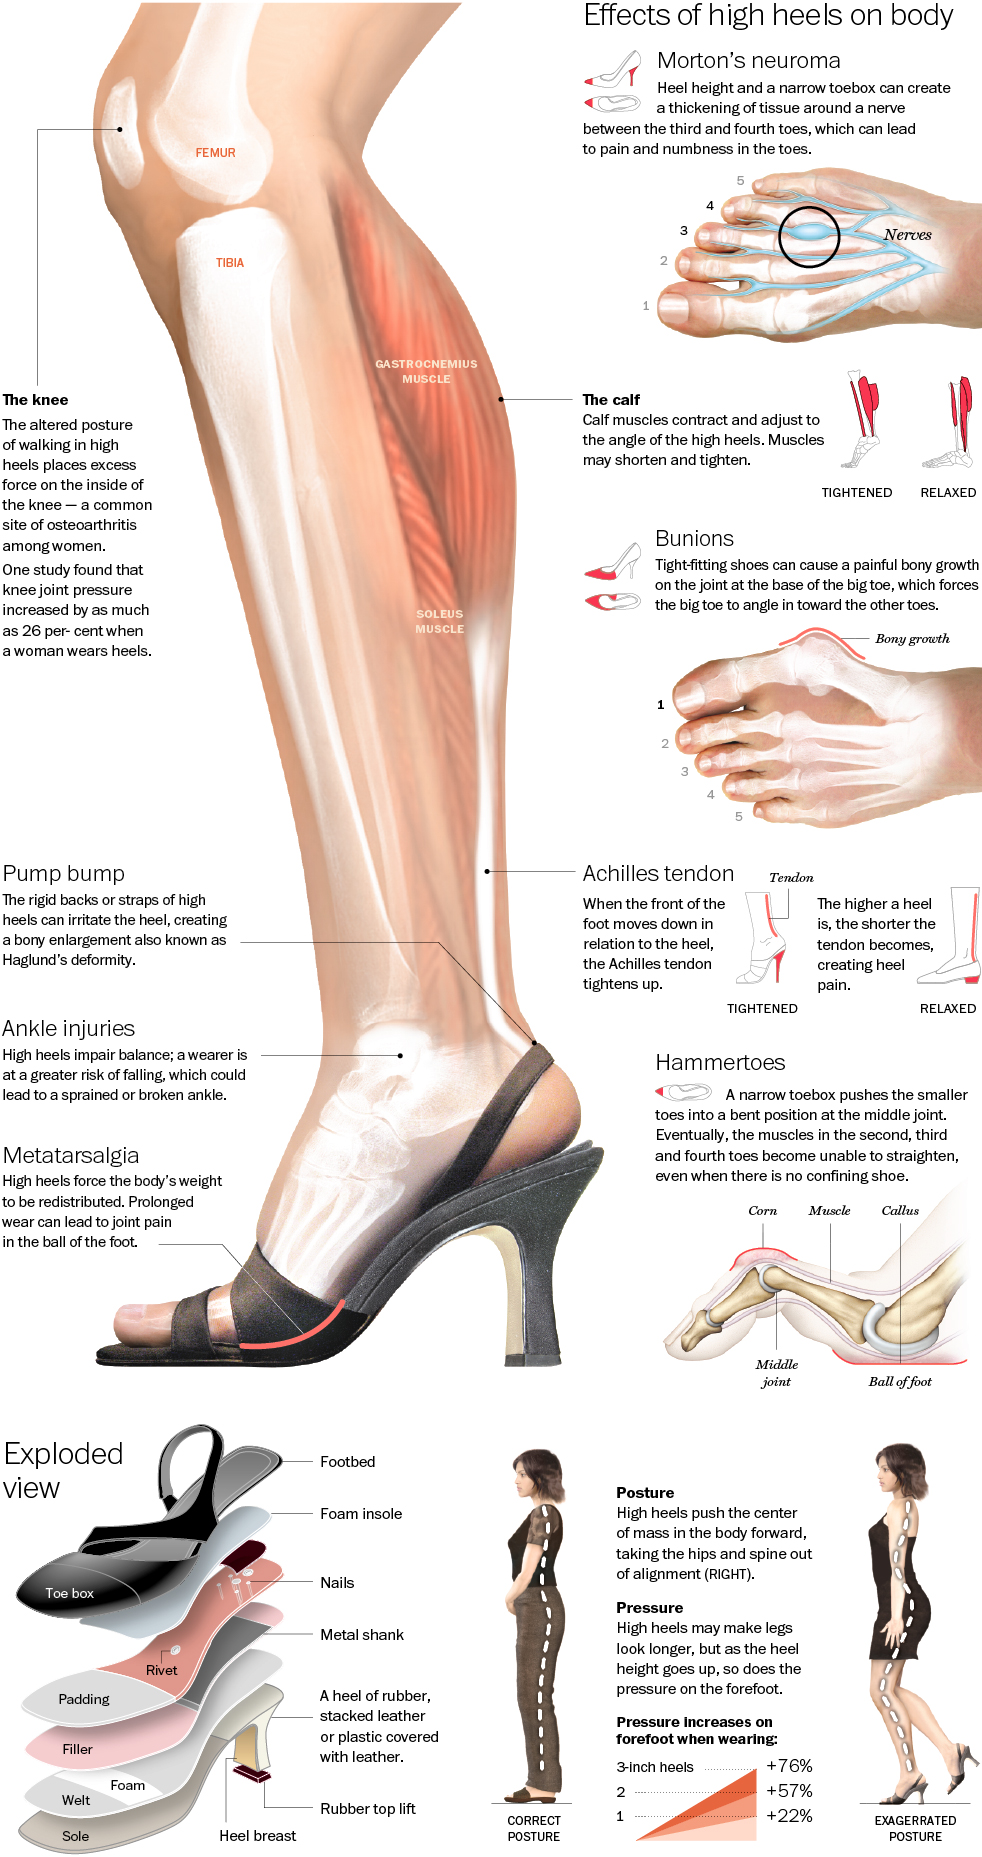 high heels - Crucial Effects Of High Heels On Body